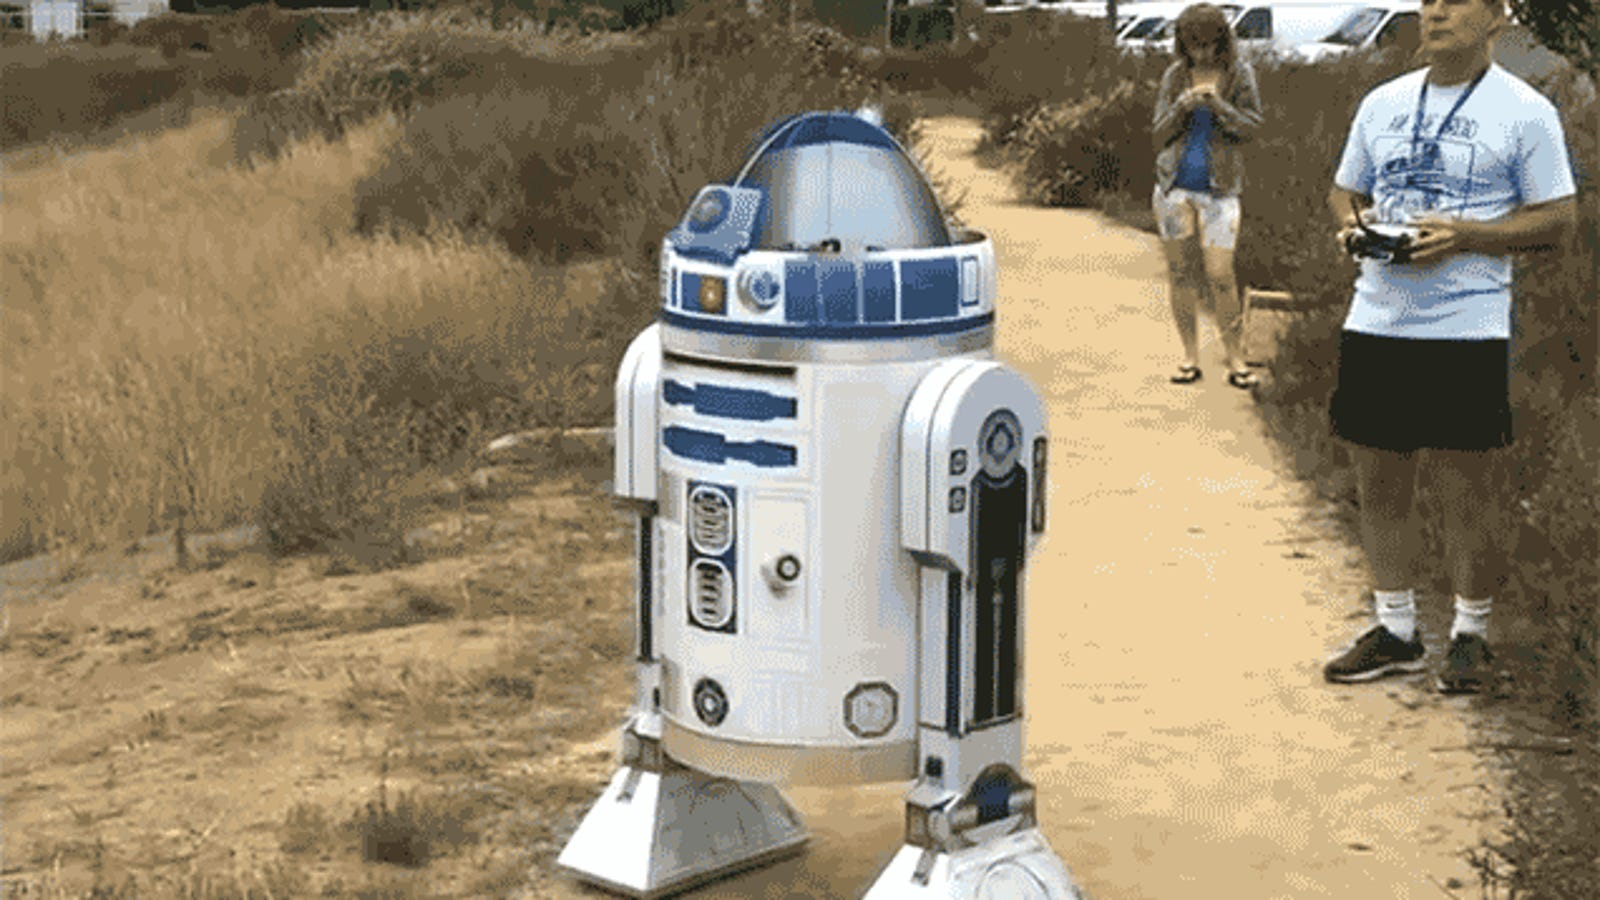 With a Drone Inside, R2-D2 Can Finally Fly Like a Bird